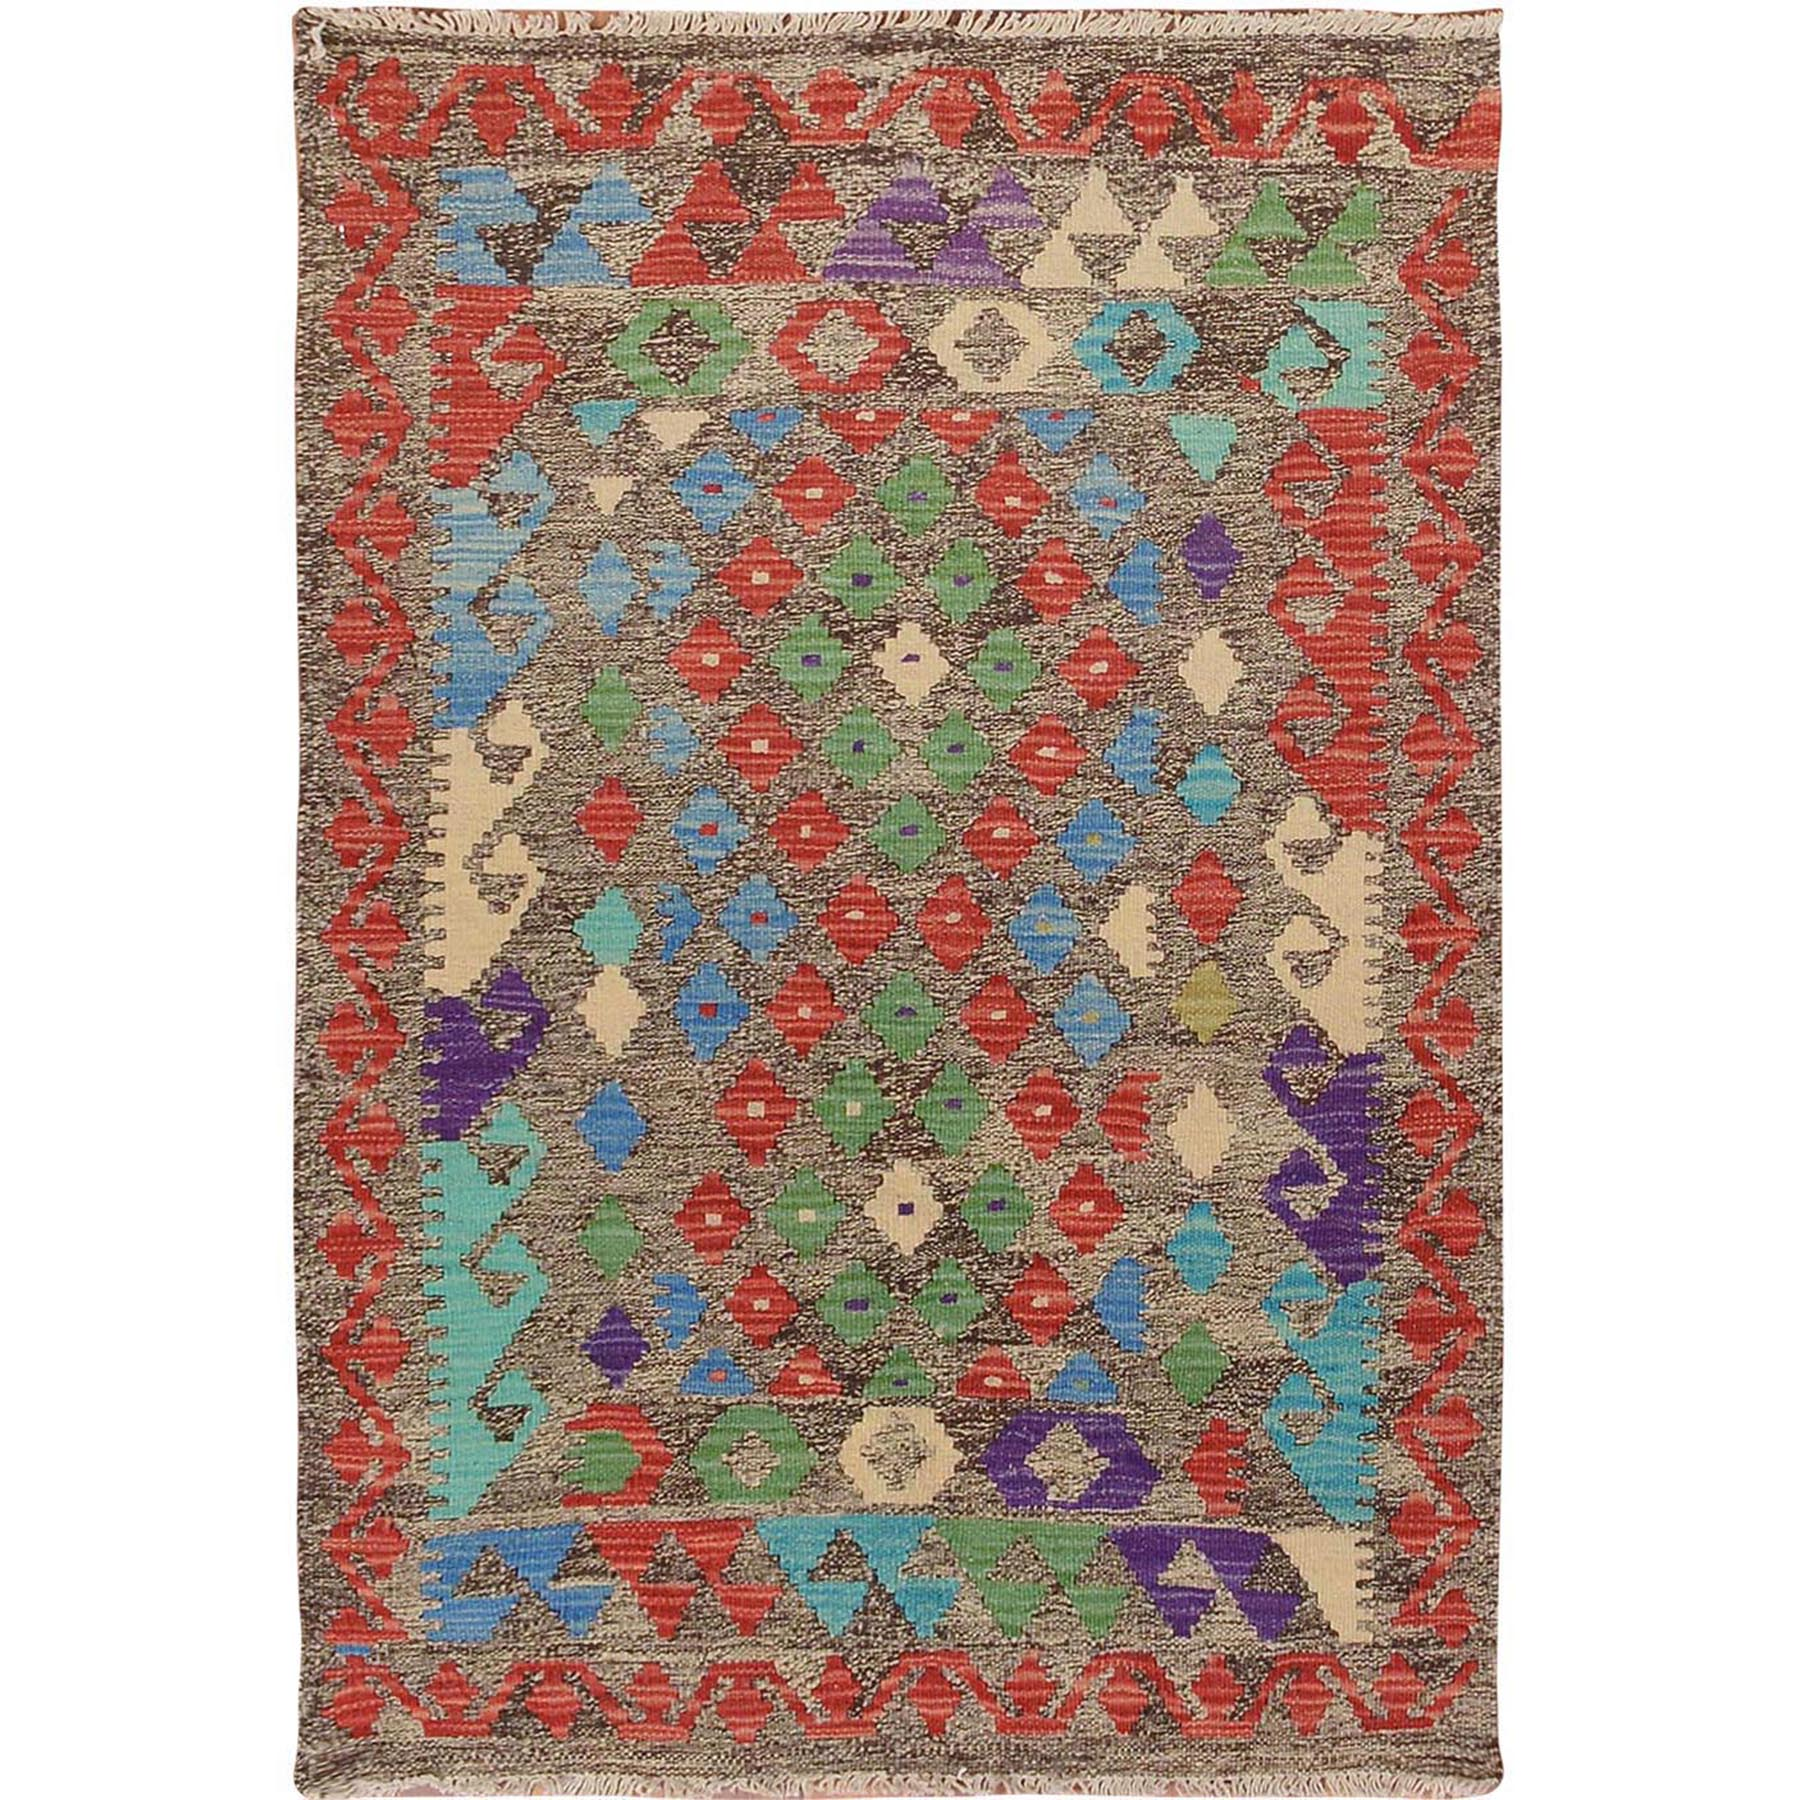 "2'9""x4' Colorful Reversible Afghan Kilim Flat Weave Pure Wool Hand Woven Oriental Rug"